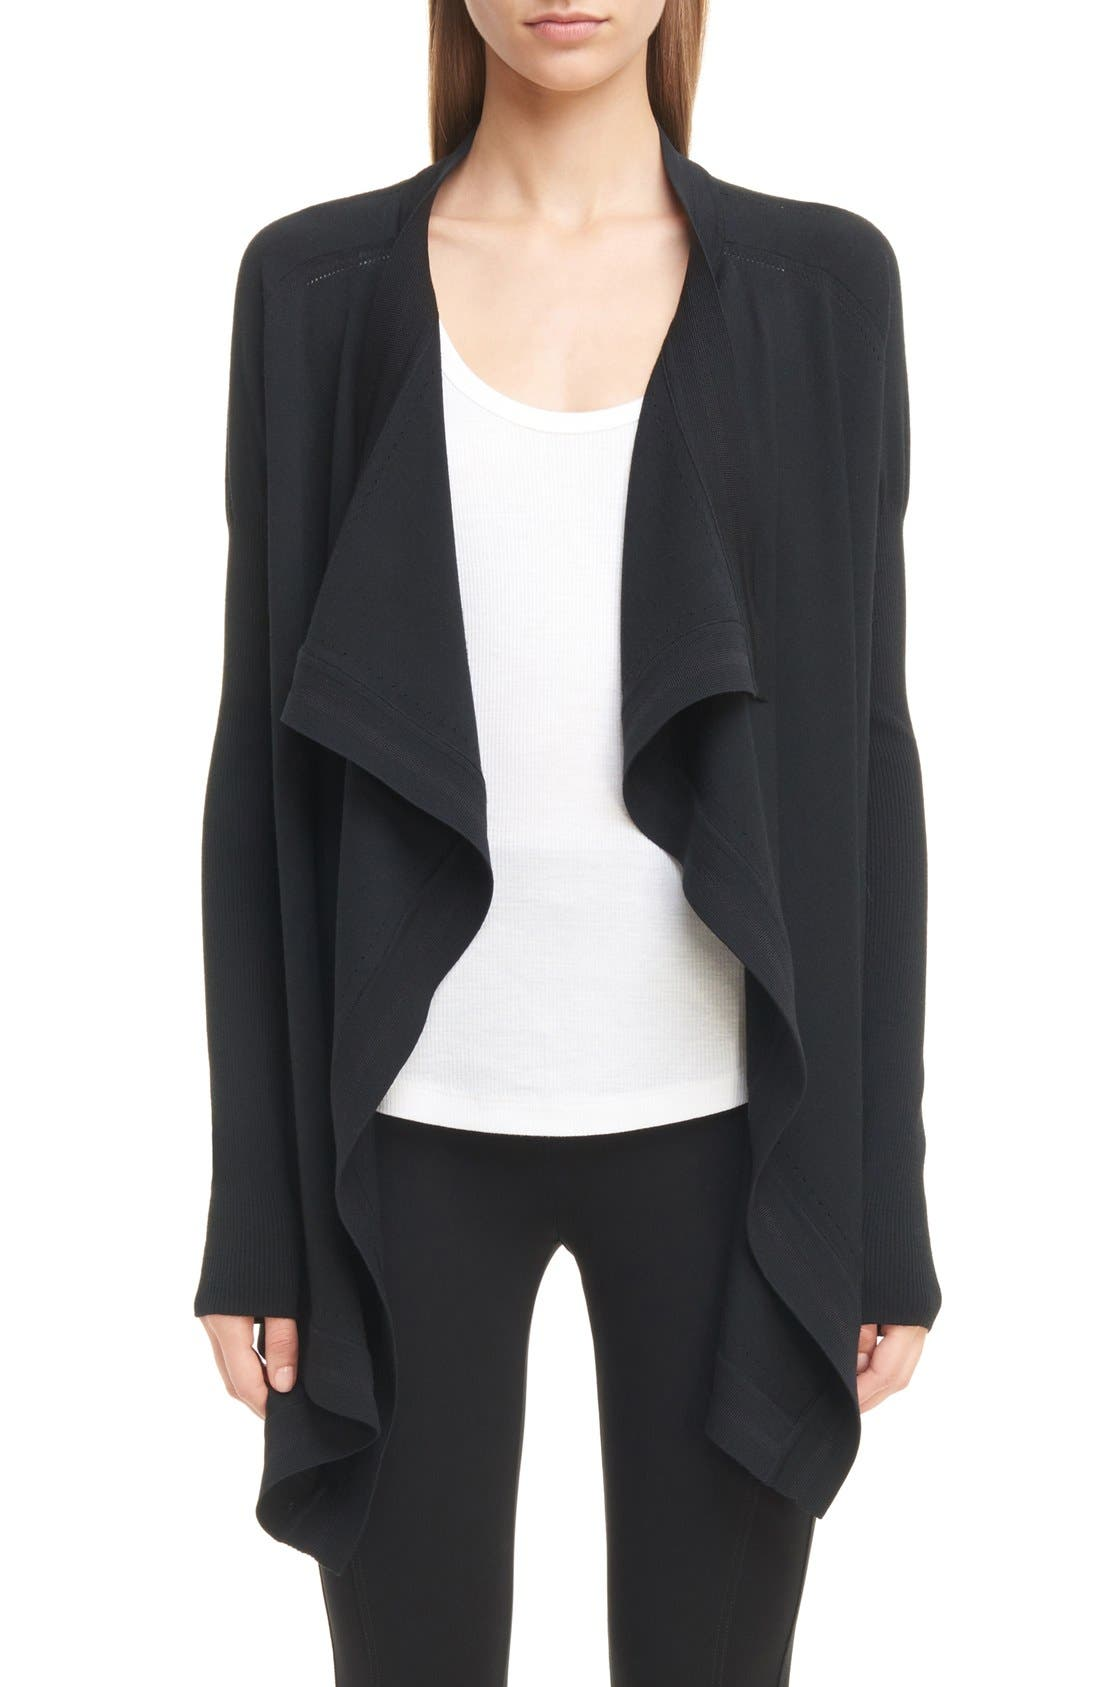 GIVENCHY Merino Wool Cardigan